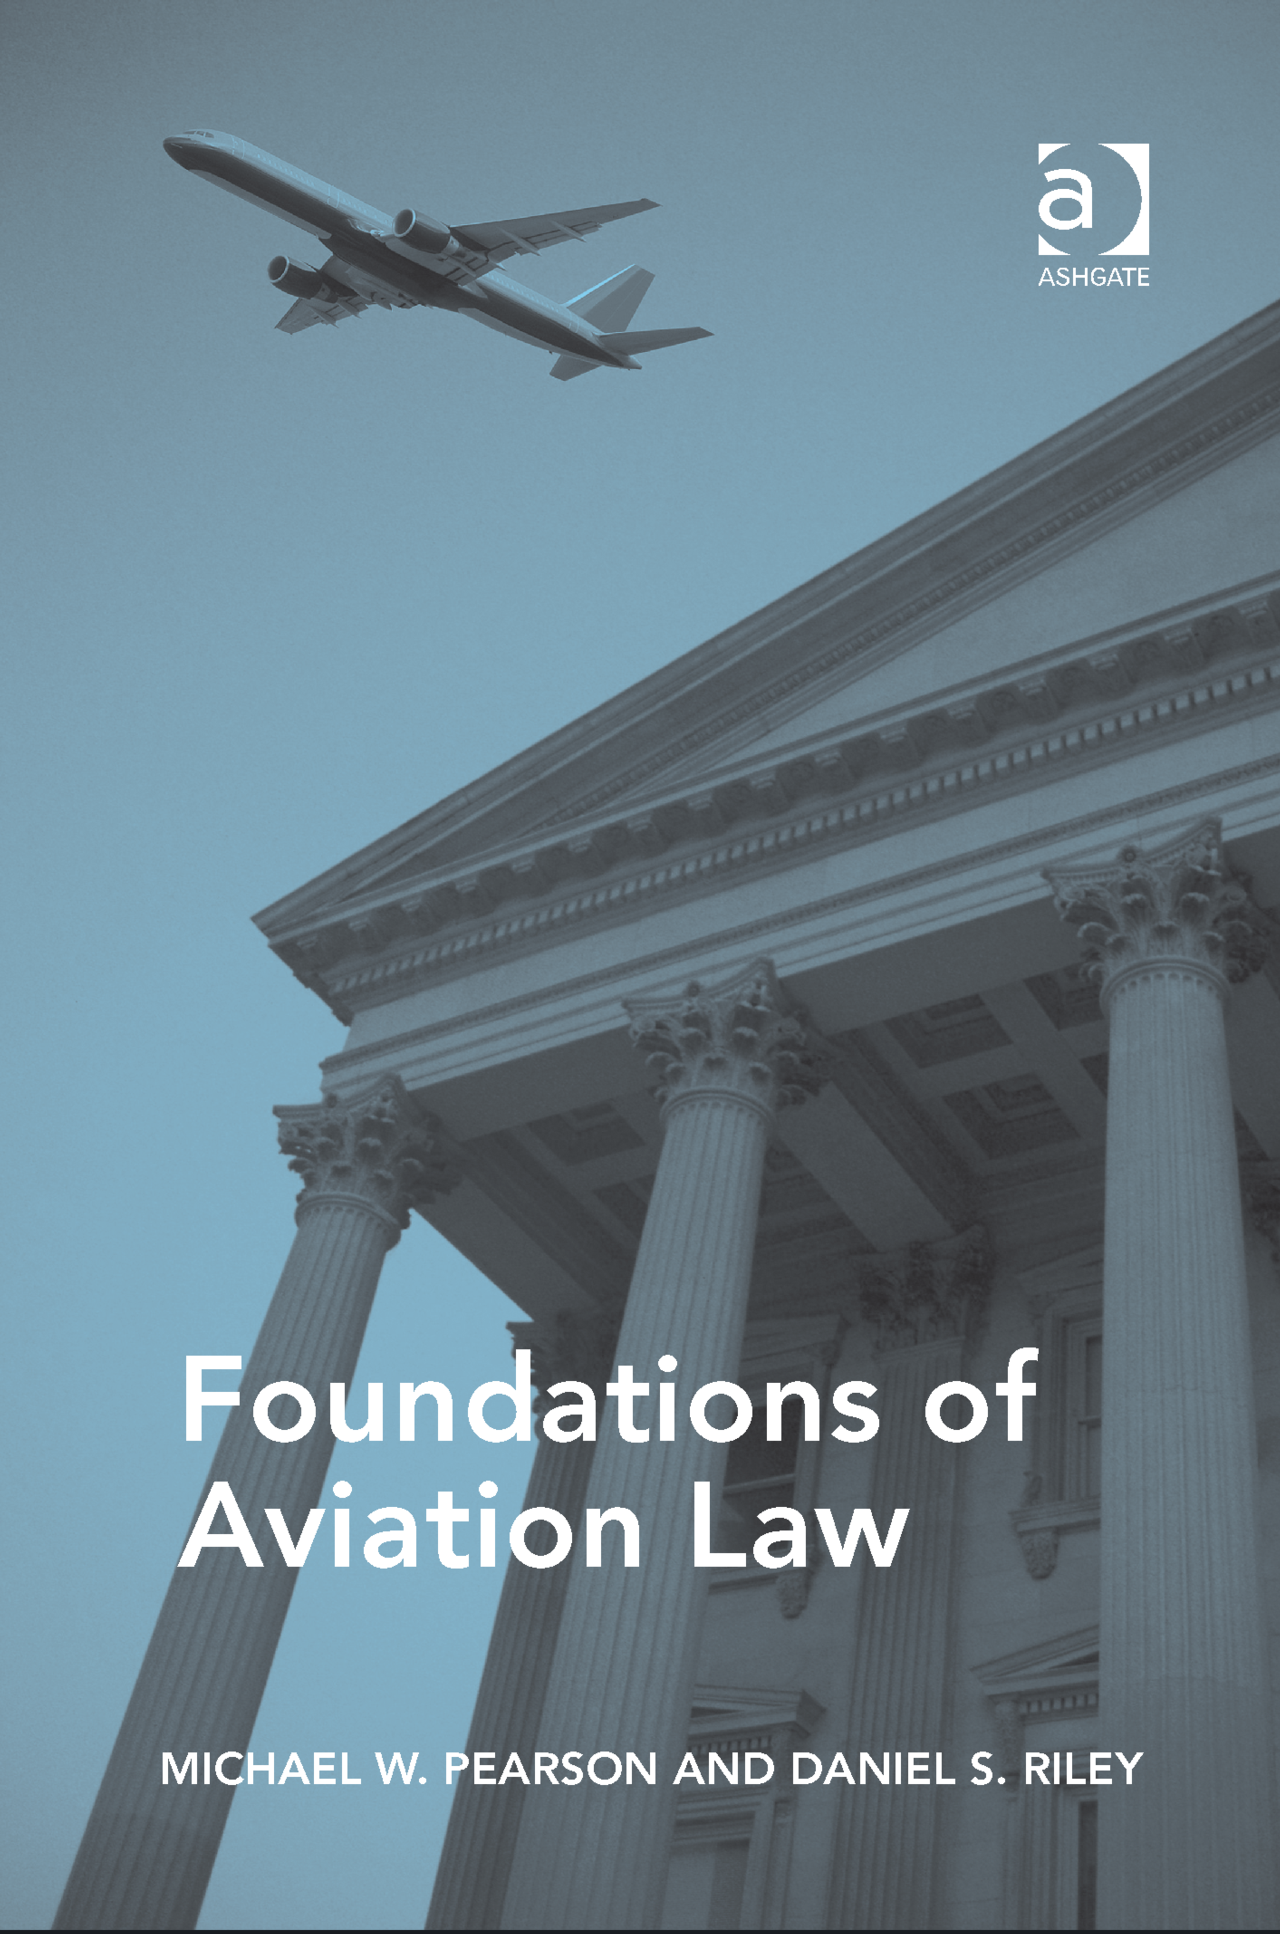 Aviation Law textbook